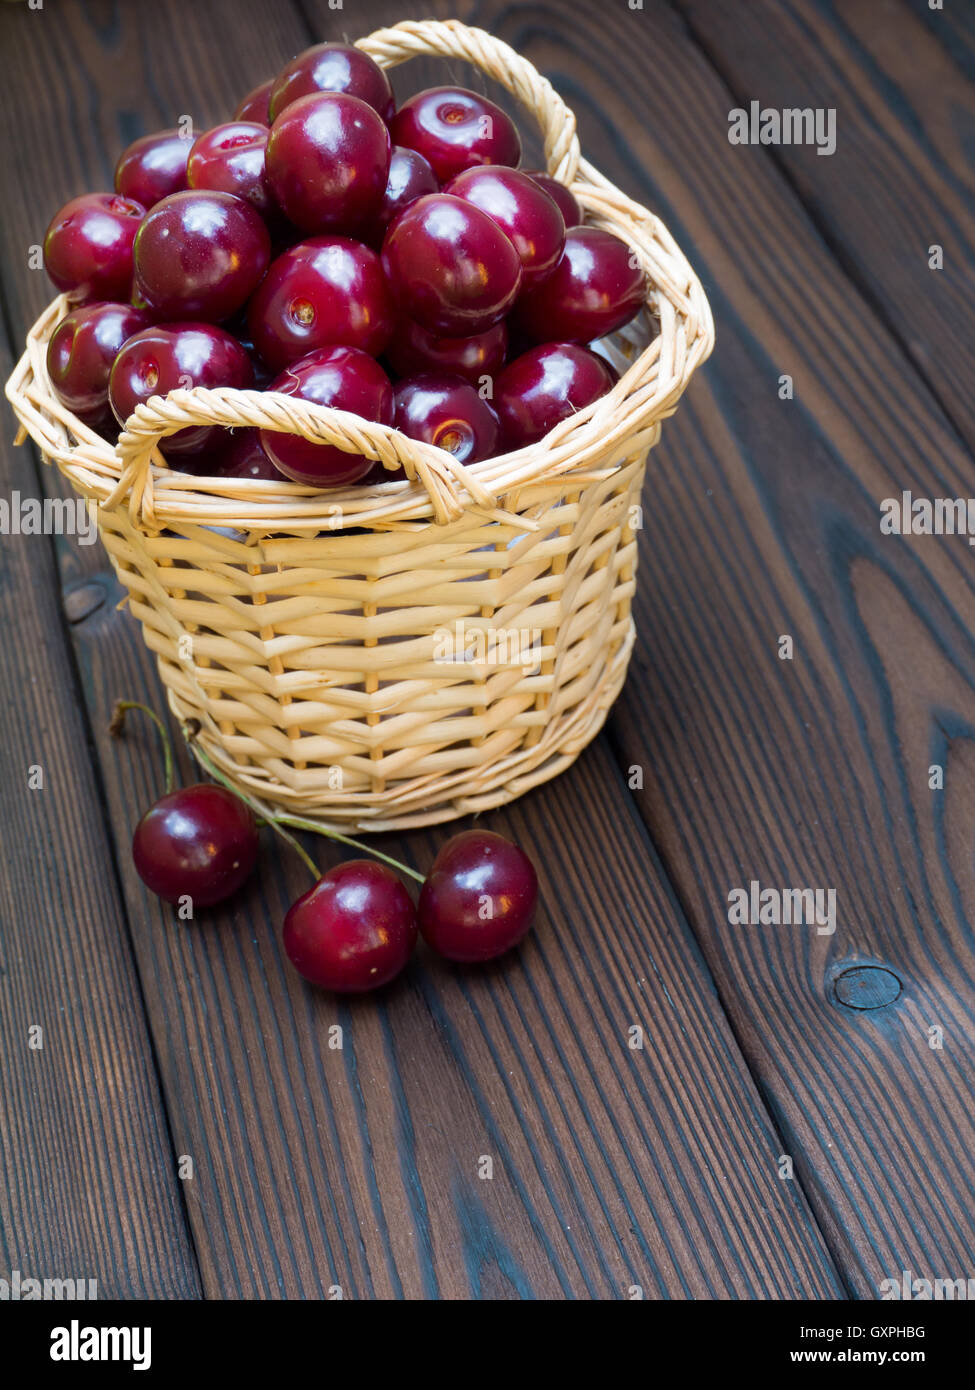 Ripe glossy cherries in the basket on the dark textured wooden planks - Stock Image